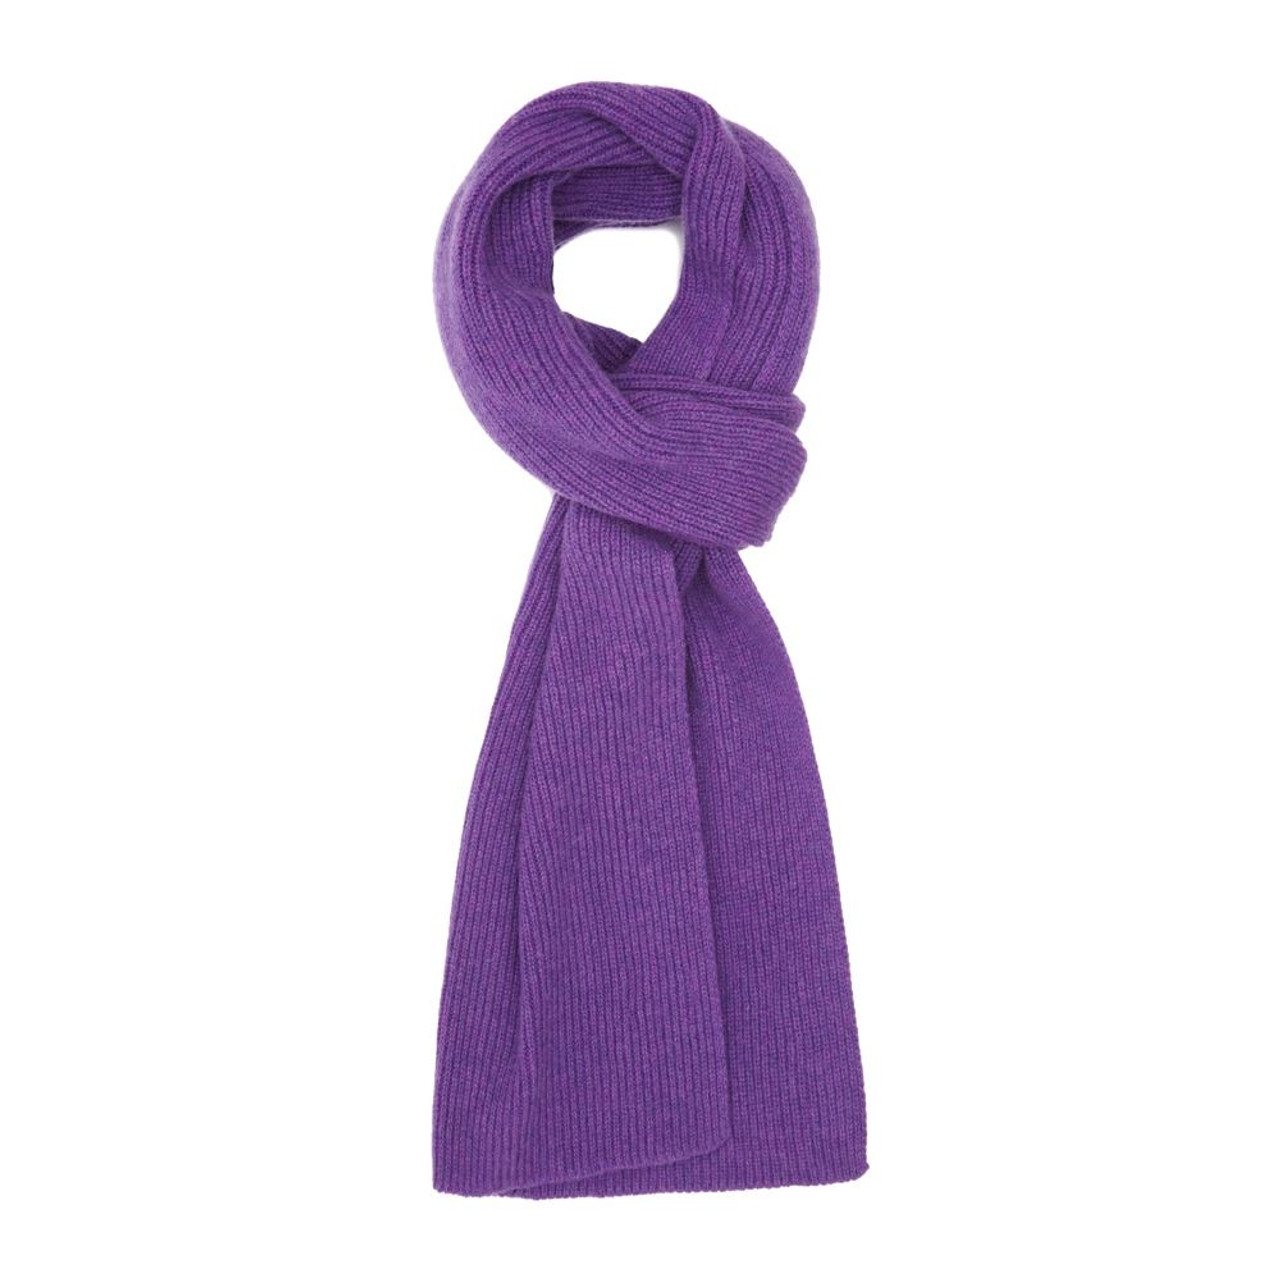 91b89558606aea Cashmere Ribbed Scarf, Purple - Cashmere